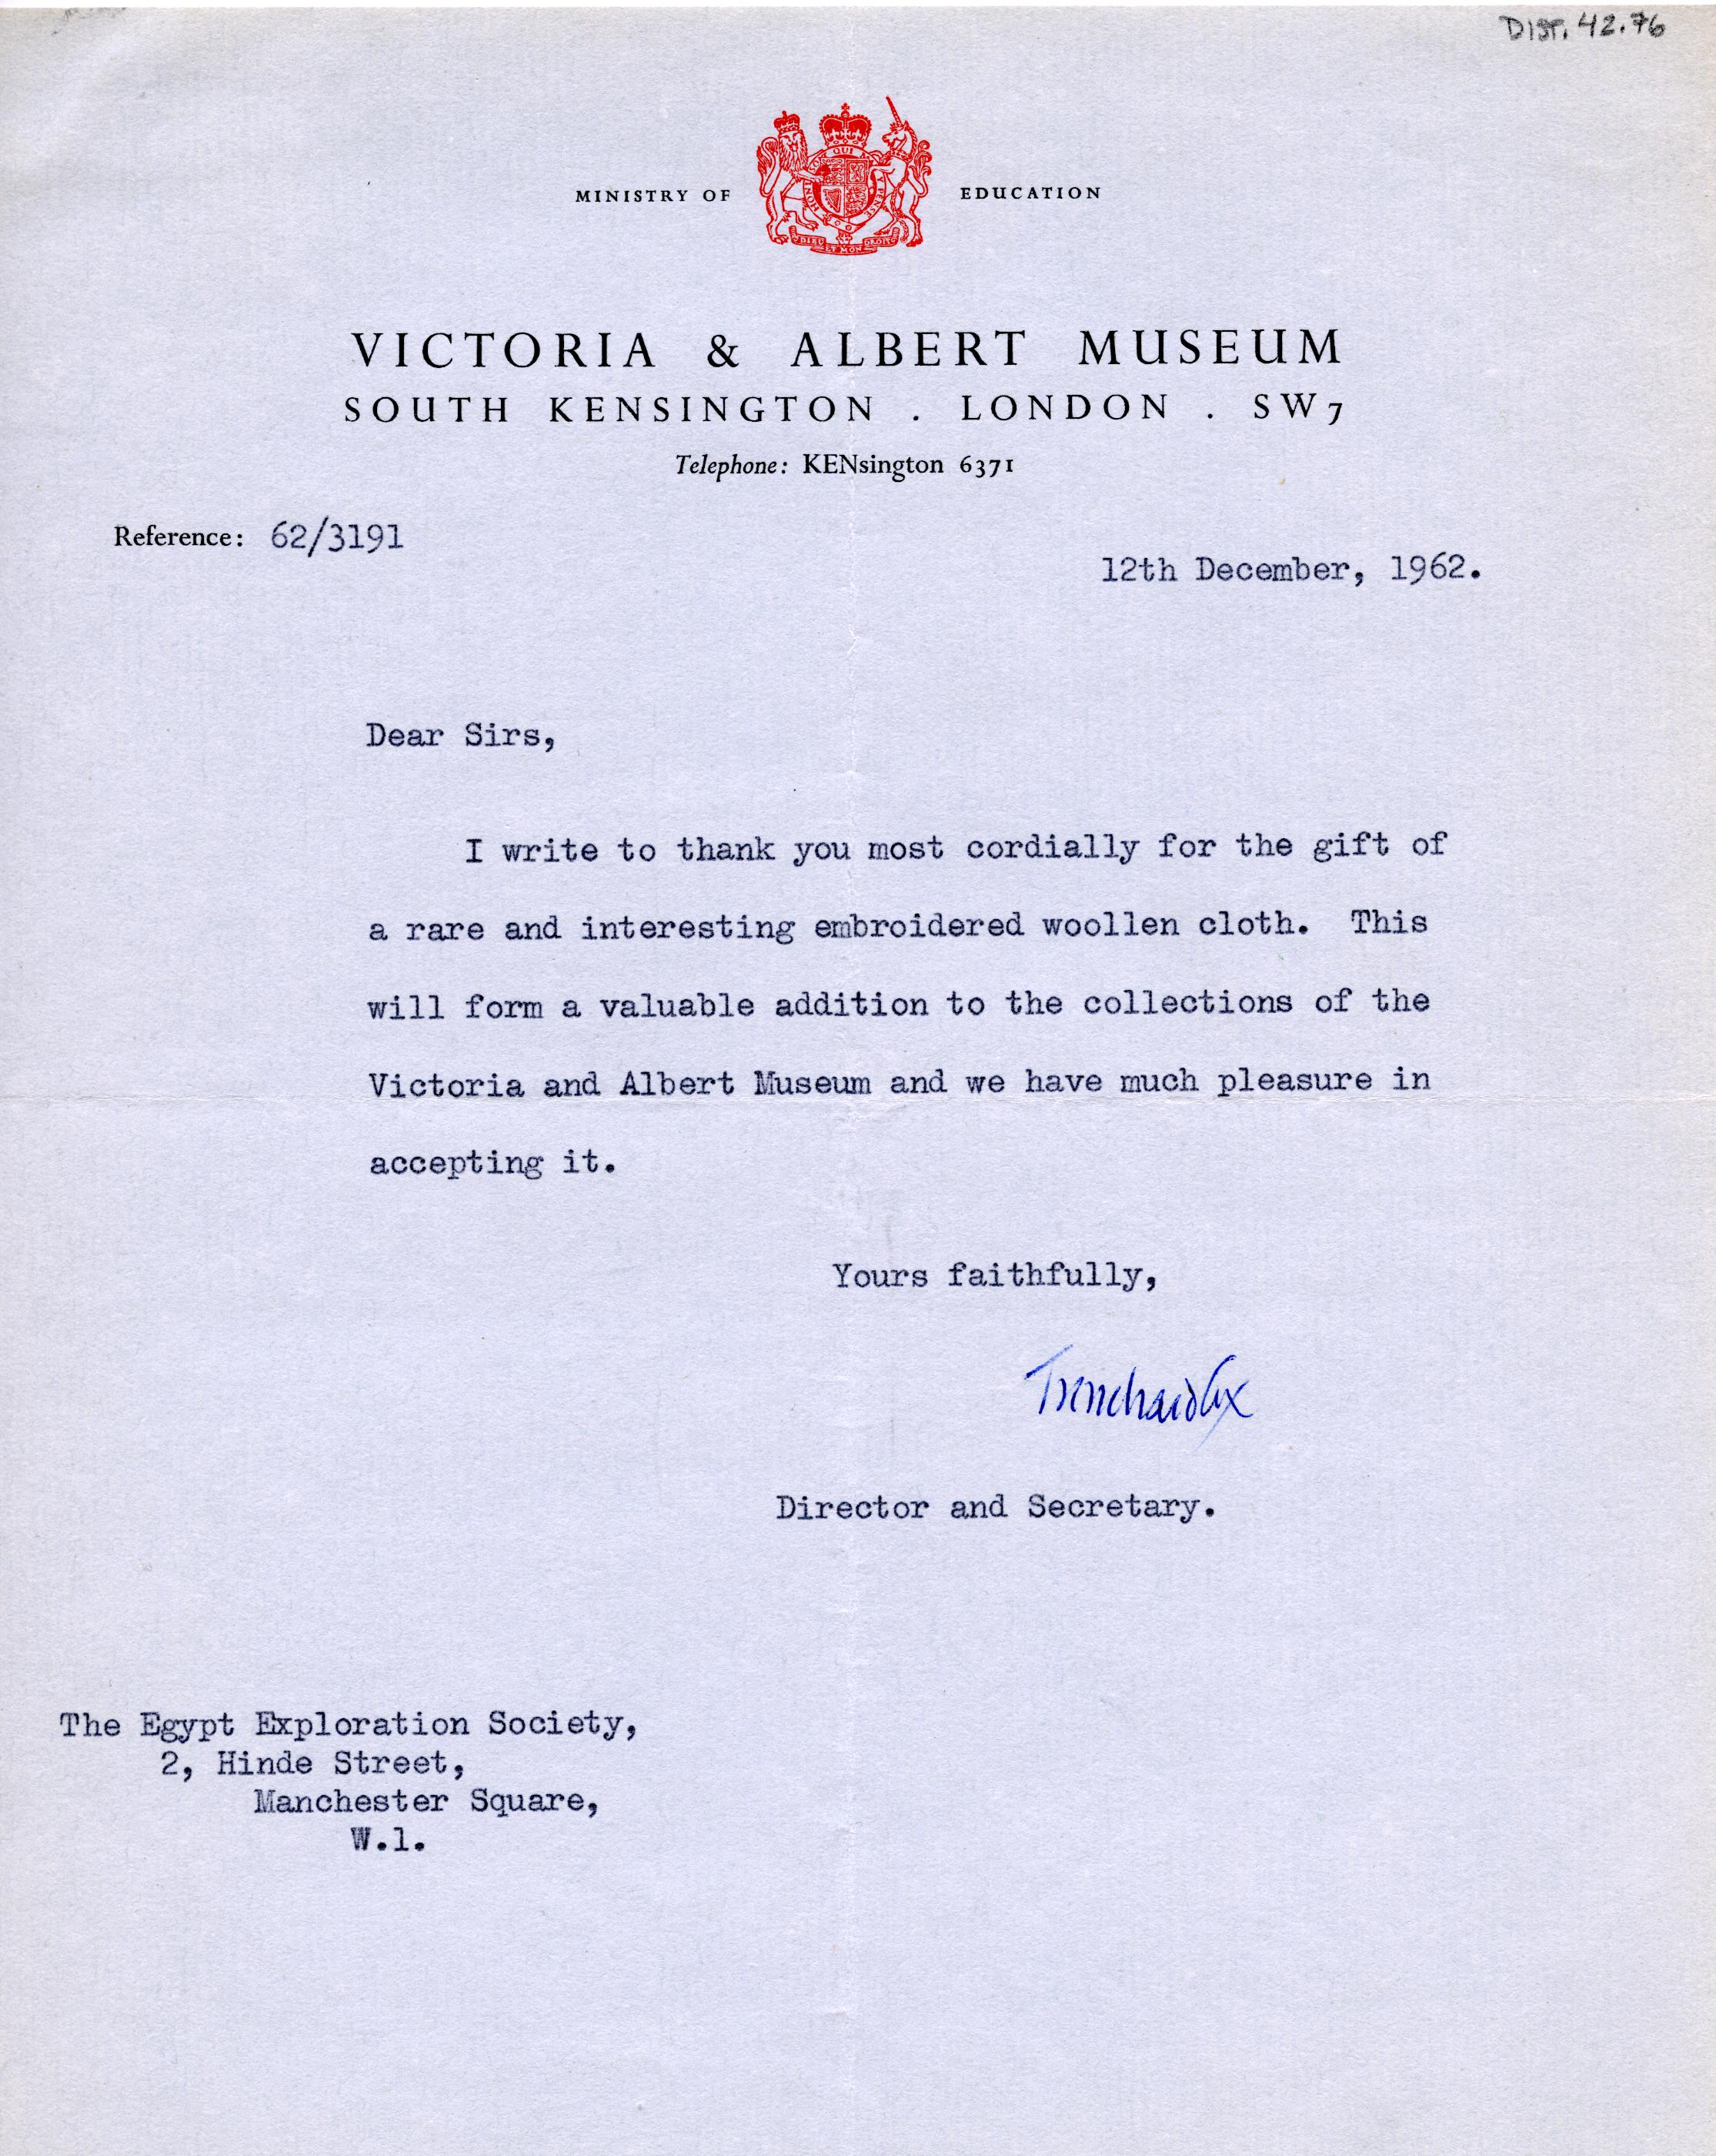 1922-71 Miscellaneous correspondence with museums DIST.42.76